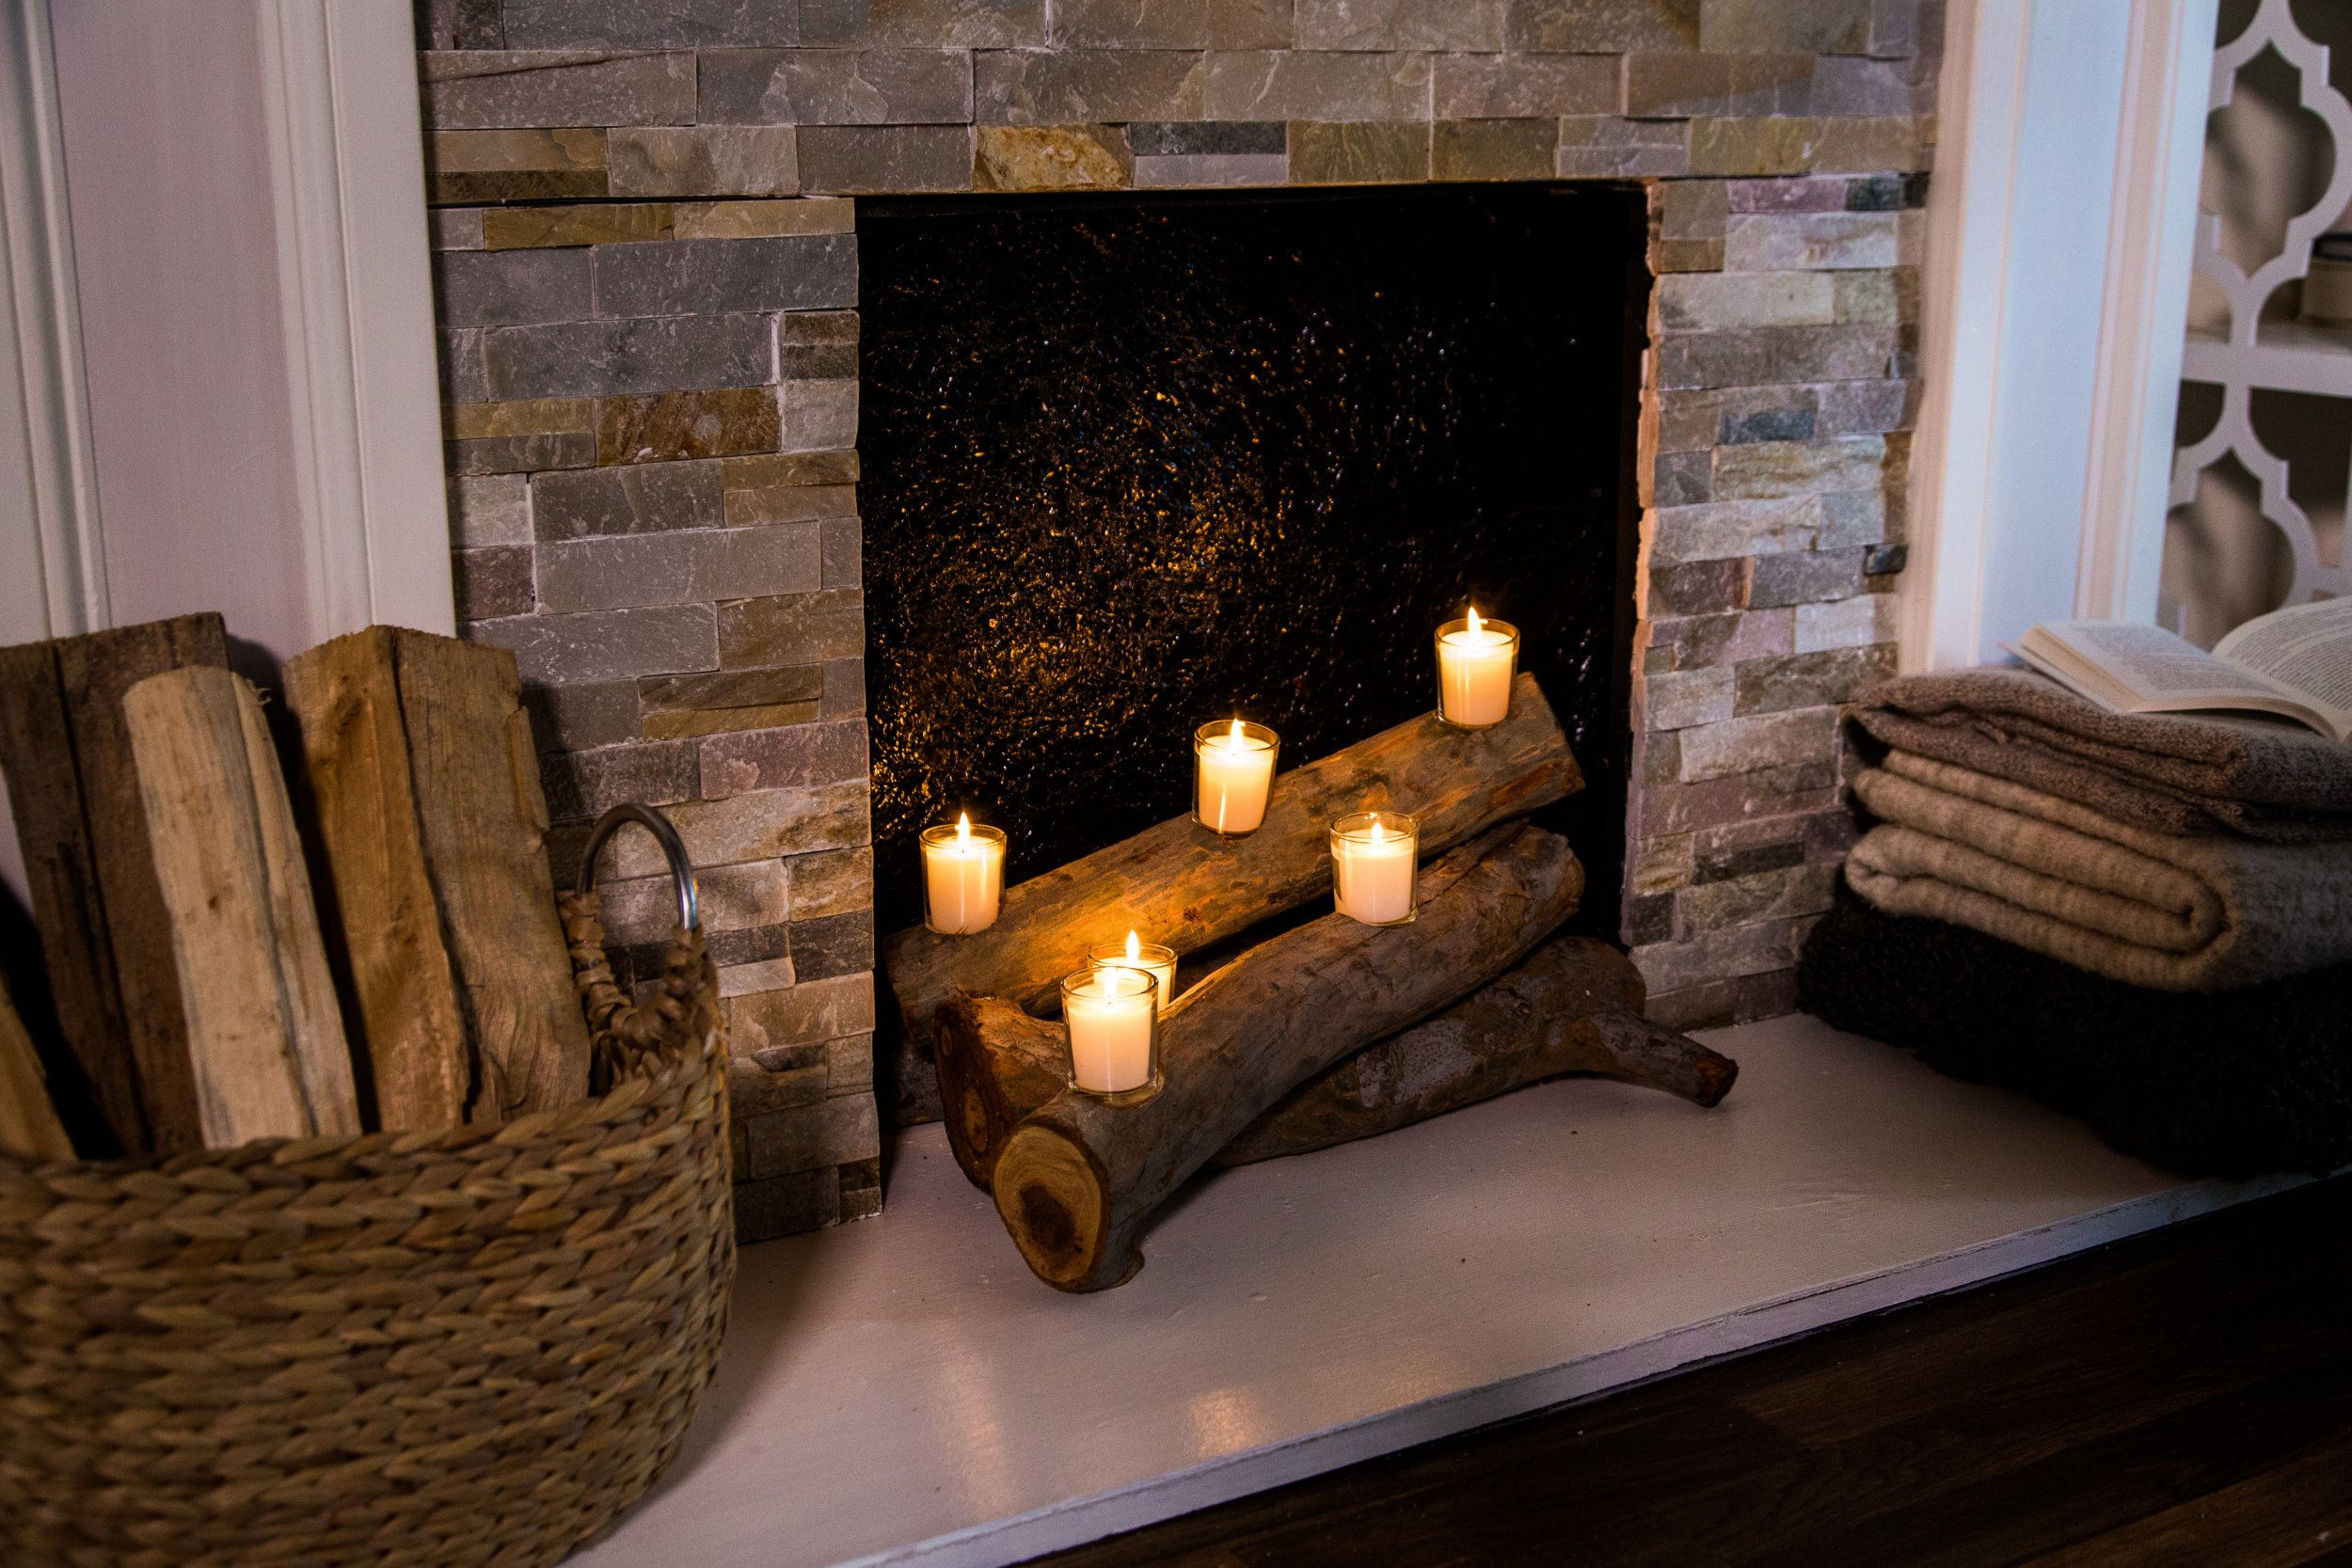 Candle Logs for Fireplace Inspirational Diy Faux Fireplace Logs Home & Family